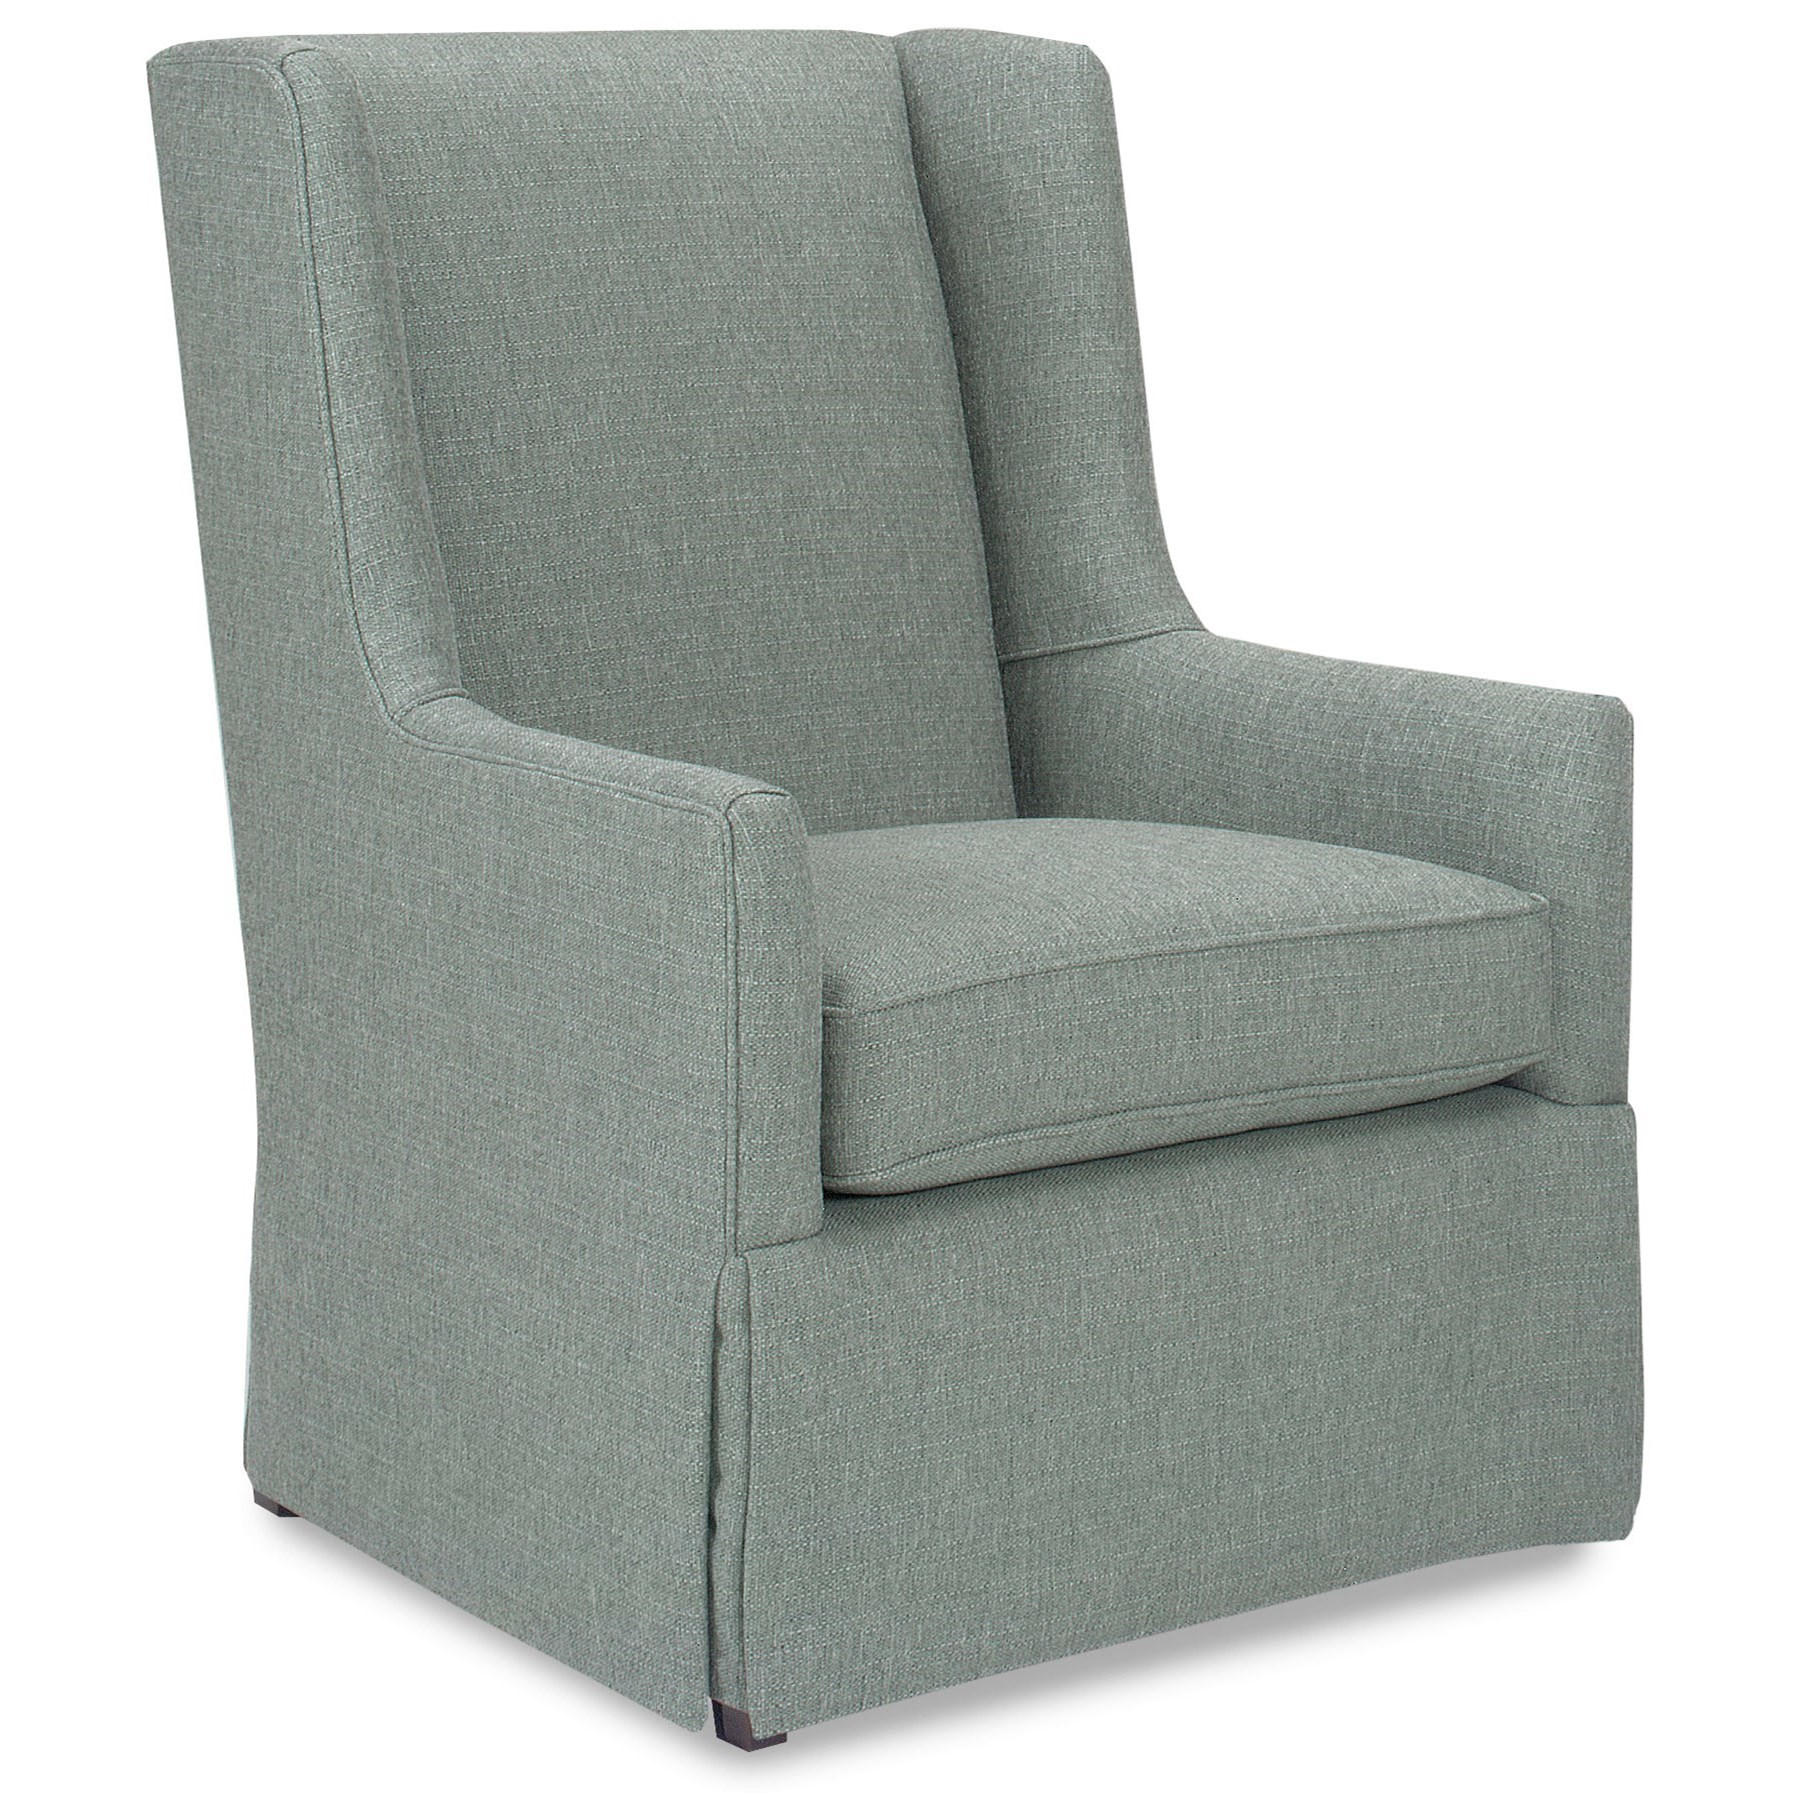 Accent Chairs Transitional Wing Back Chair by Temple Furniture at Mueller Furniture